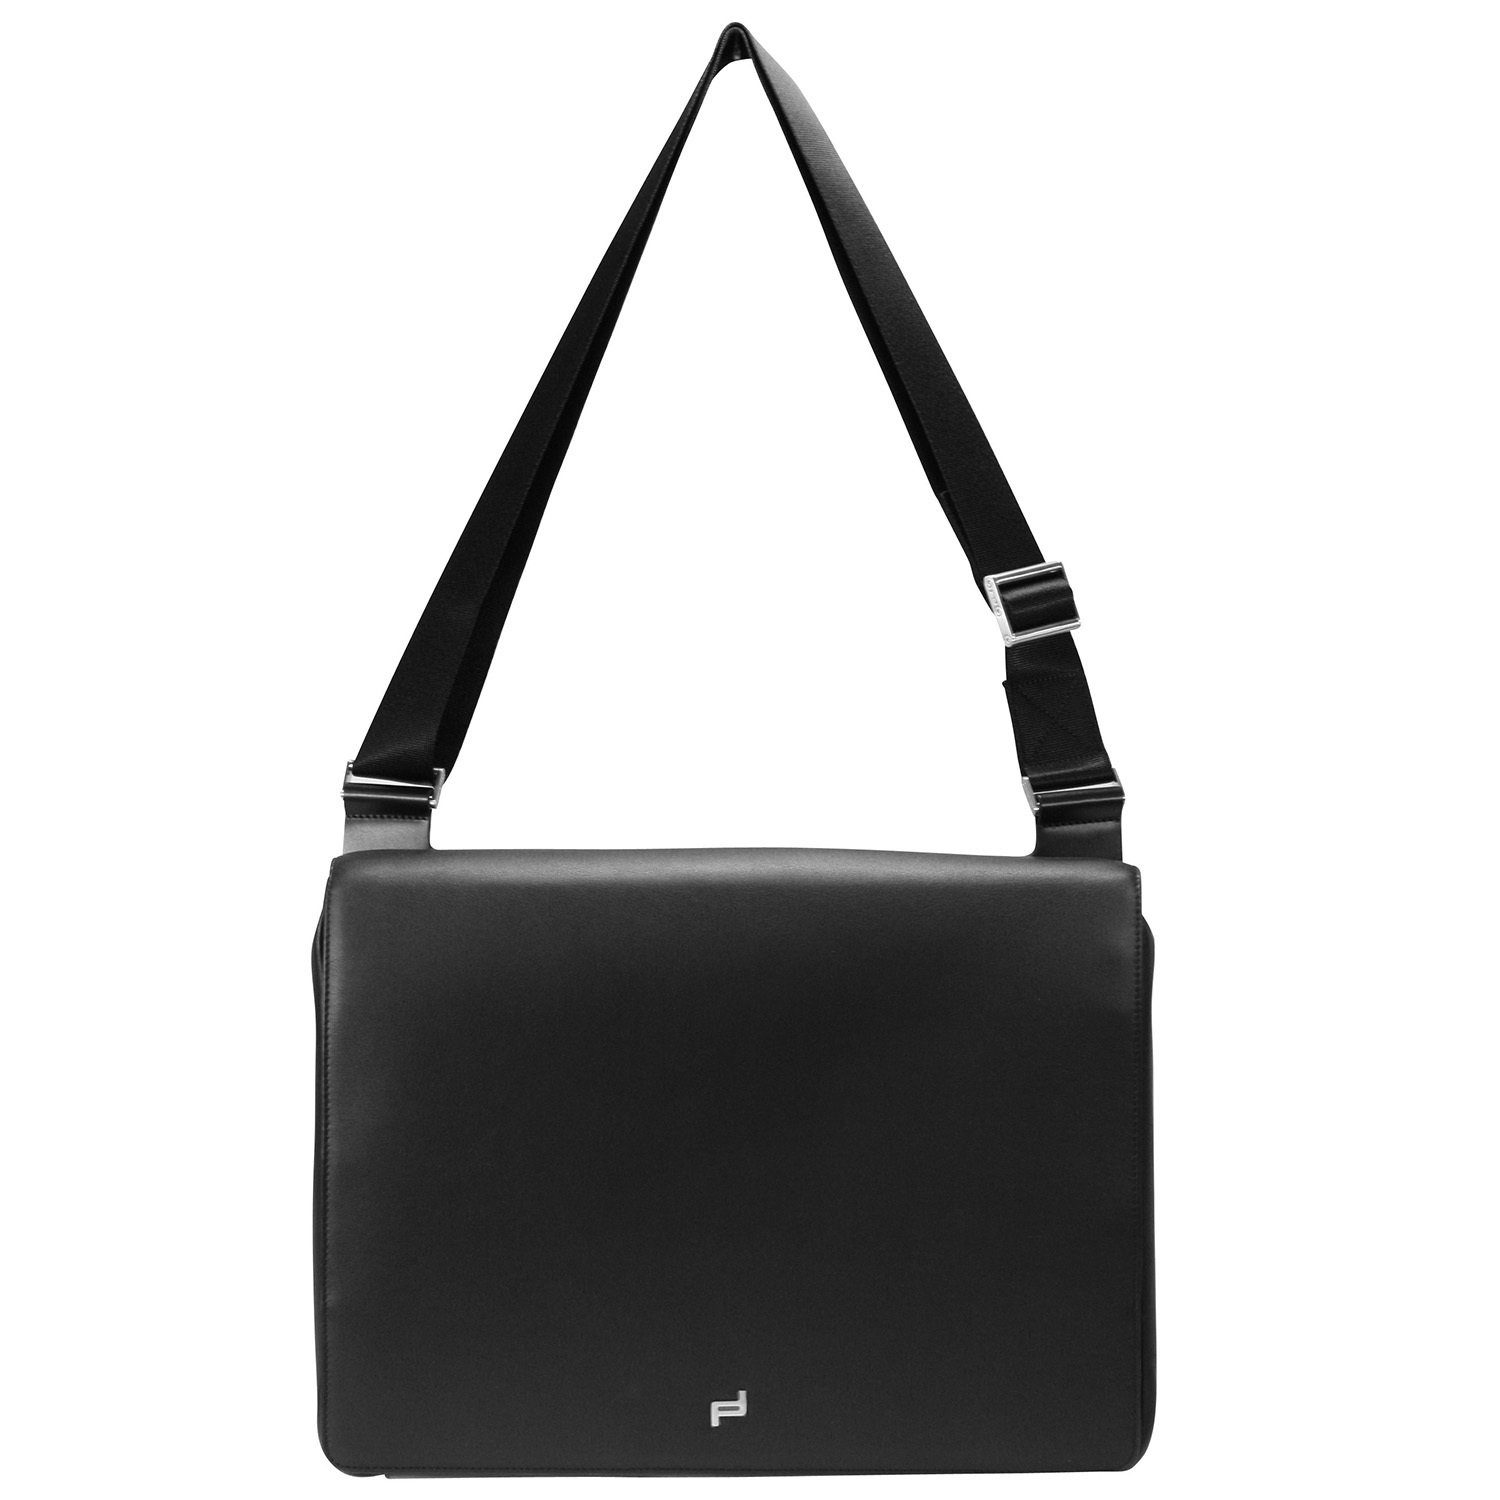 Porsche Design Shyrt-Leather ShoulderBag MFH Umhängetasche Leder 38 cm Laptopfa